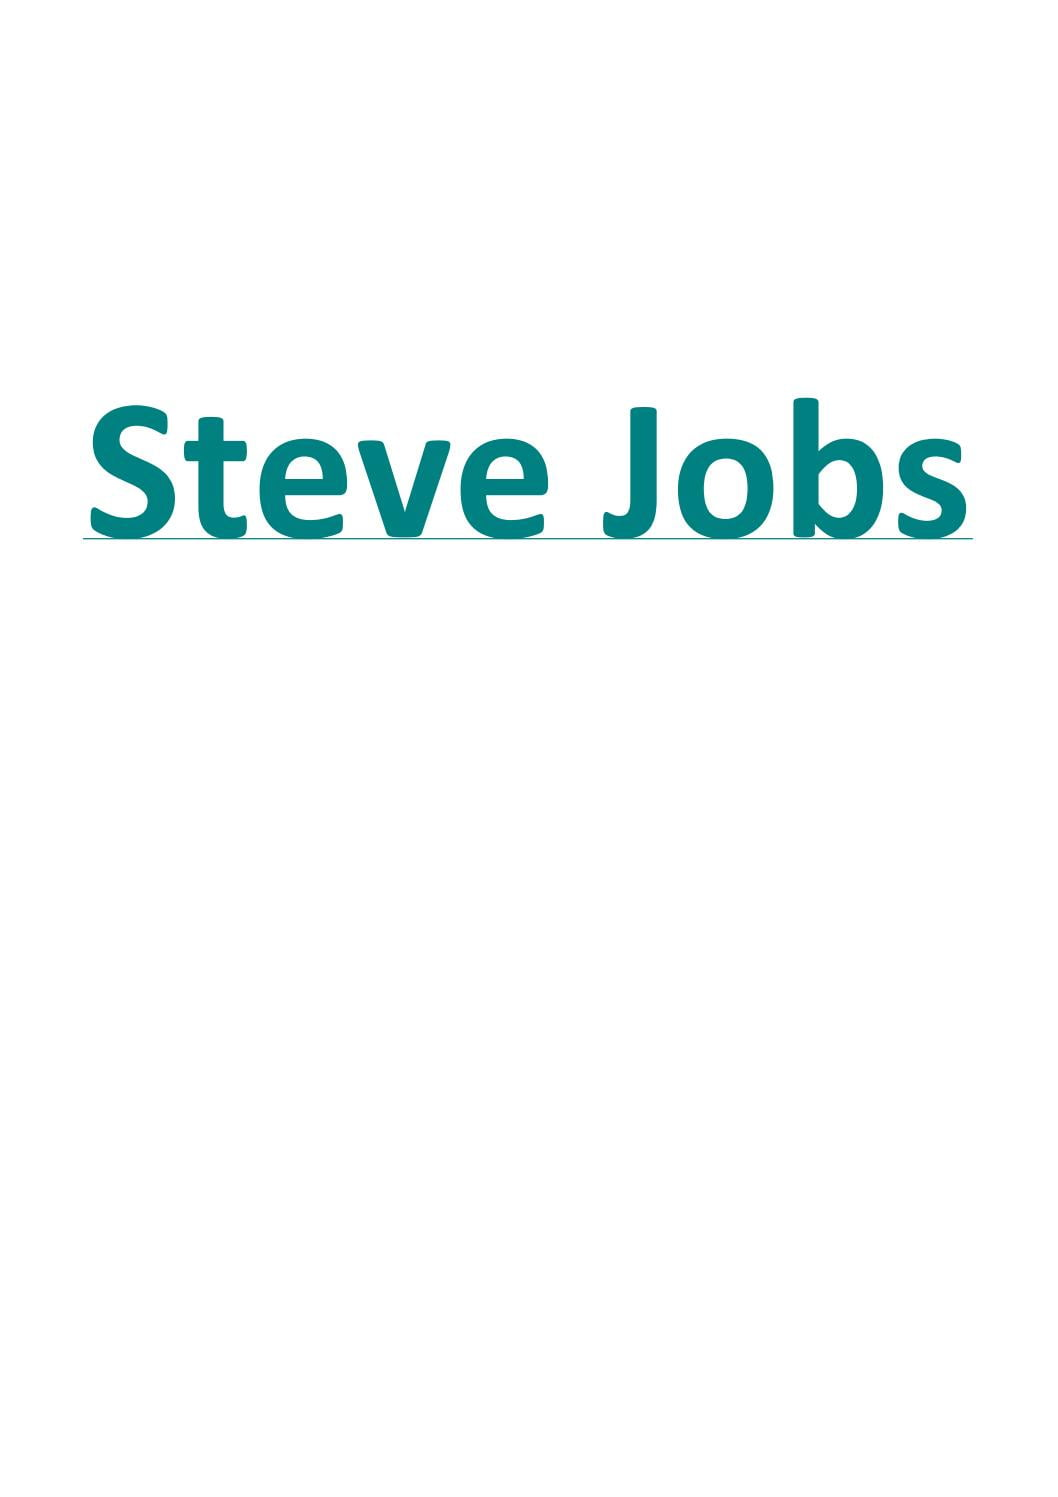 Release date of the new Steve Jobs movie